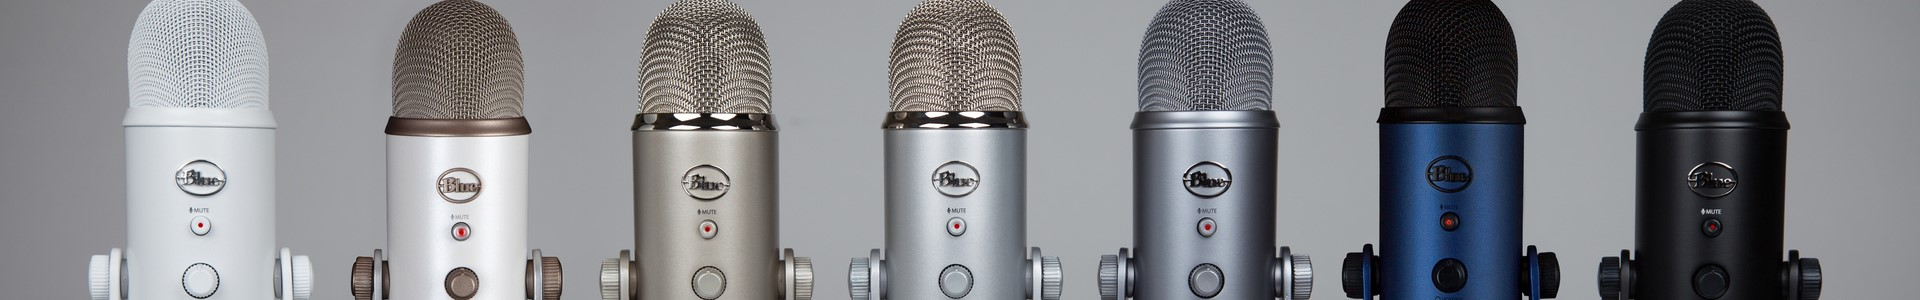 Img Largmain Privateequity Bluemicrophones